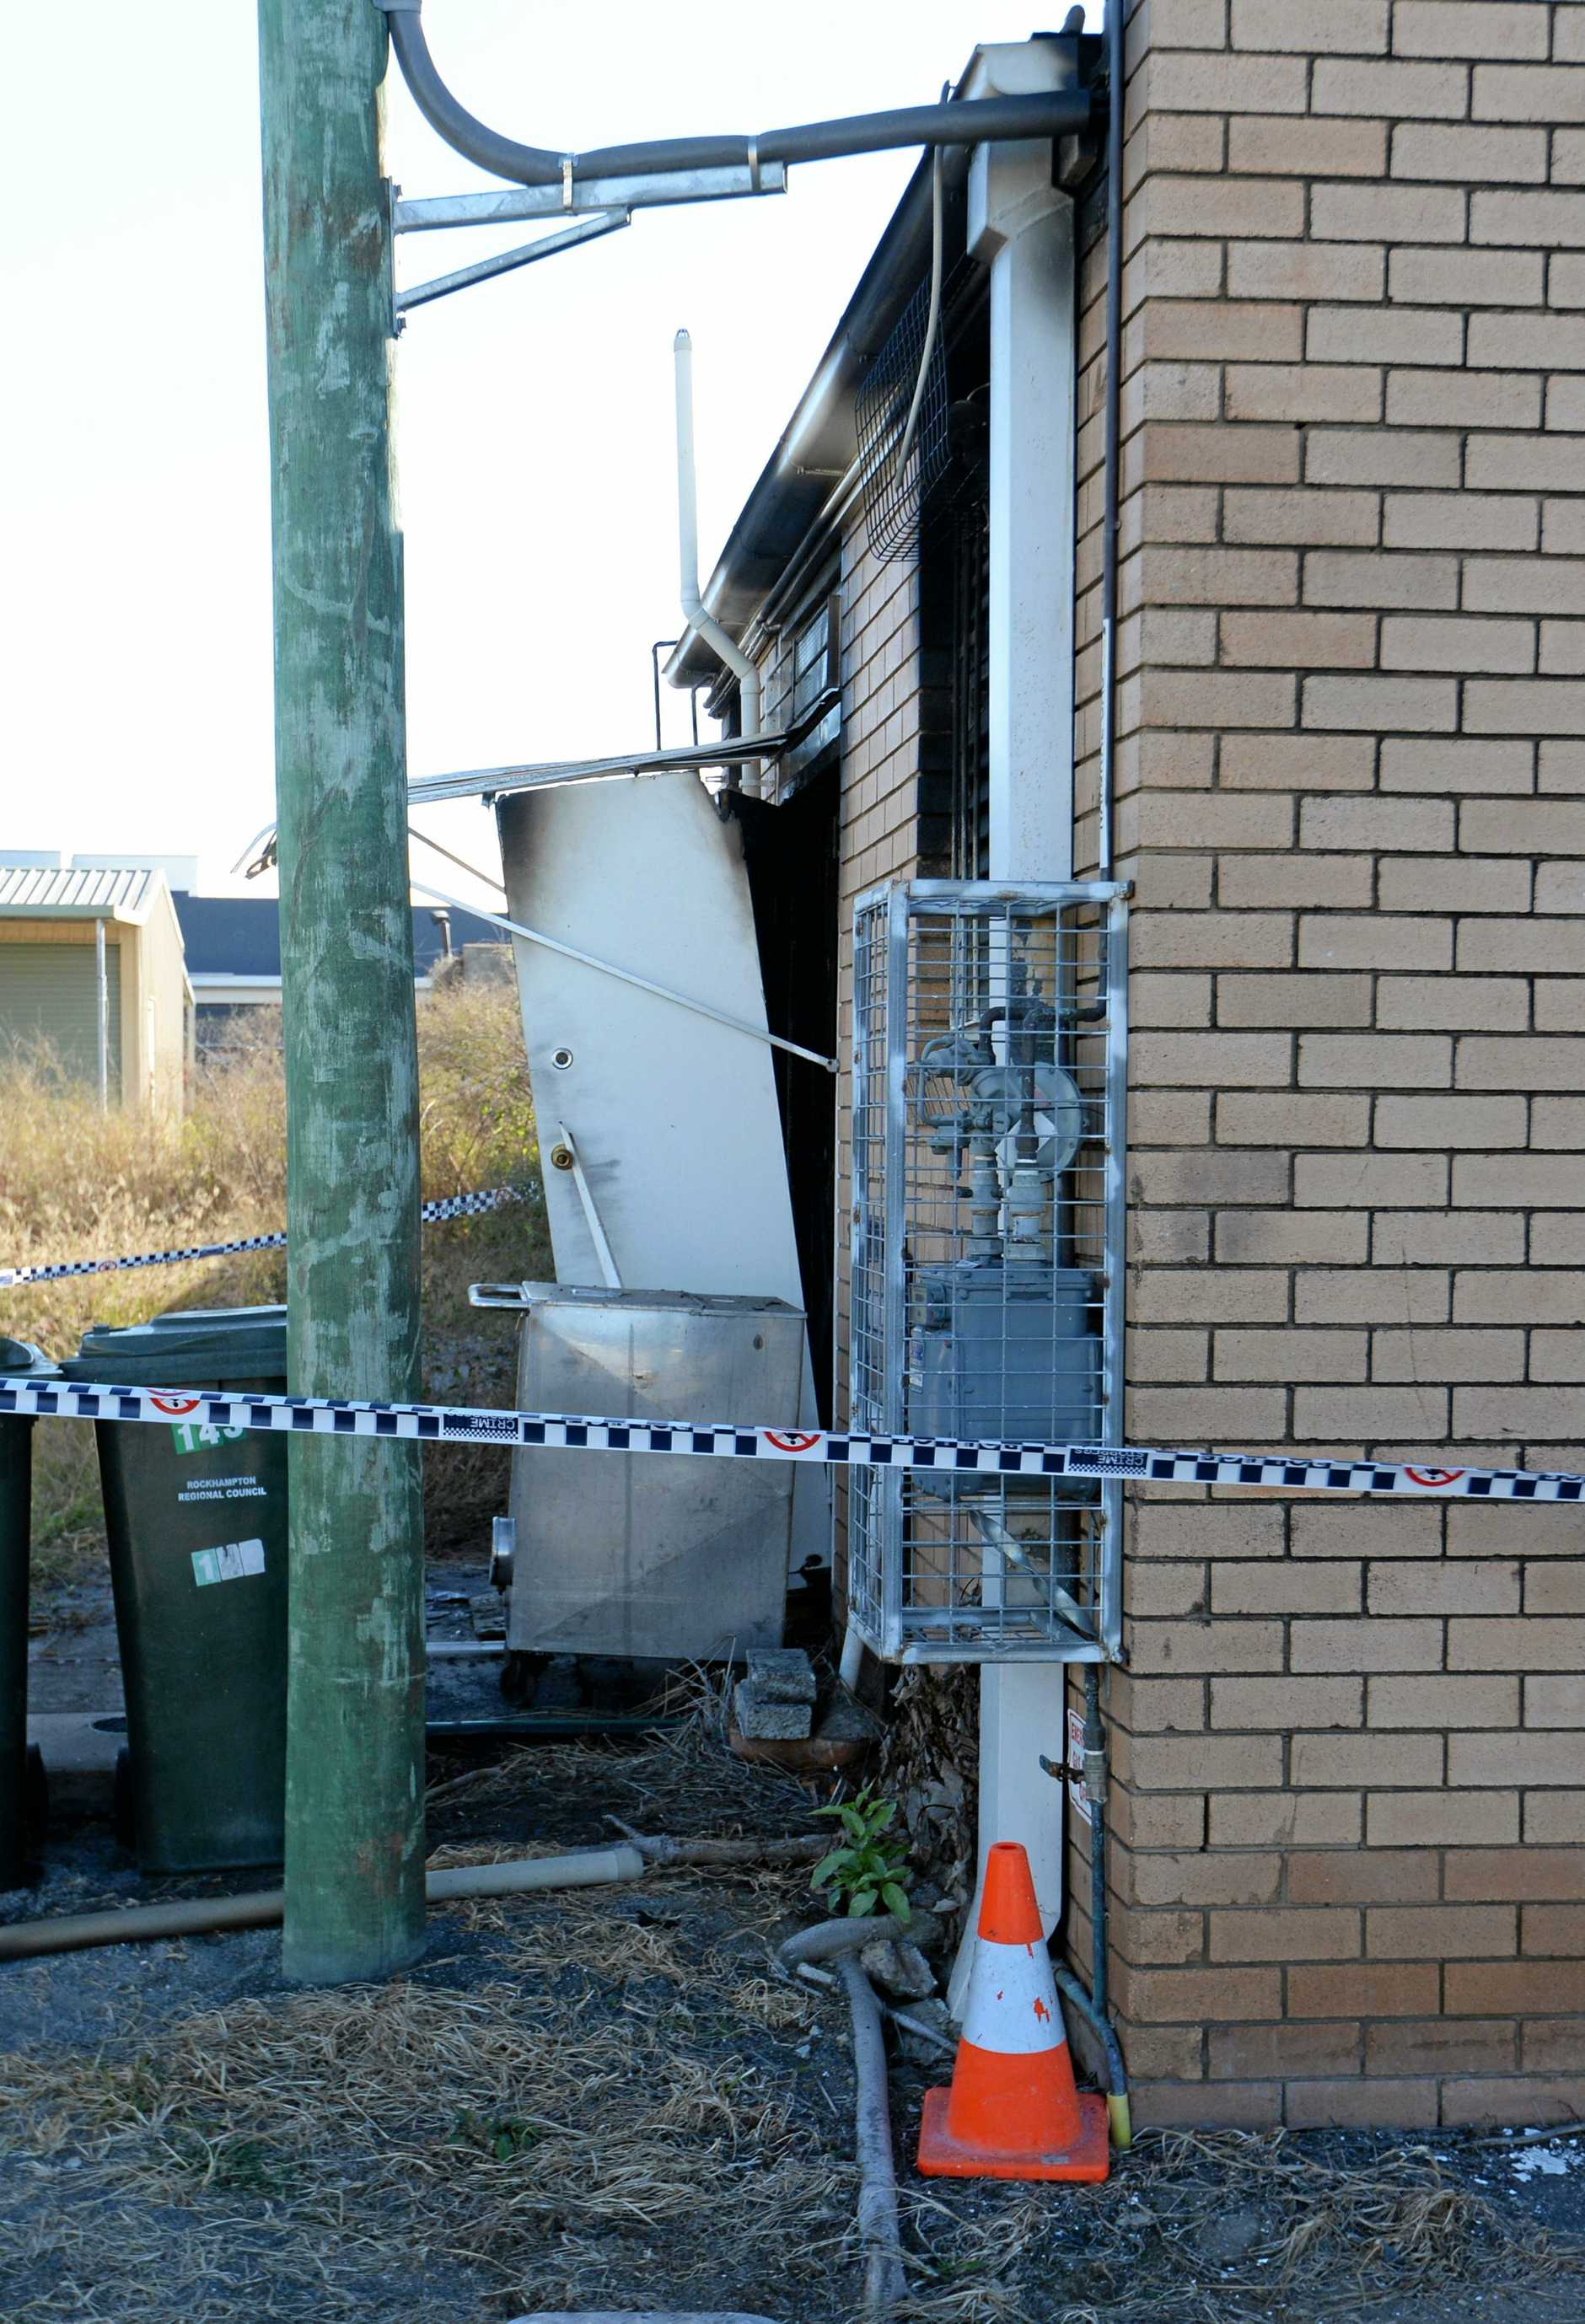 Police are investigating the cause of a suspicious fire which has gutted the Bruches cafe on Musgrave Street